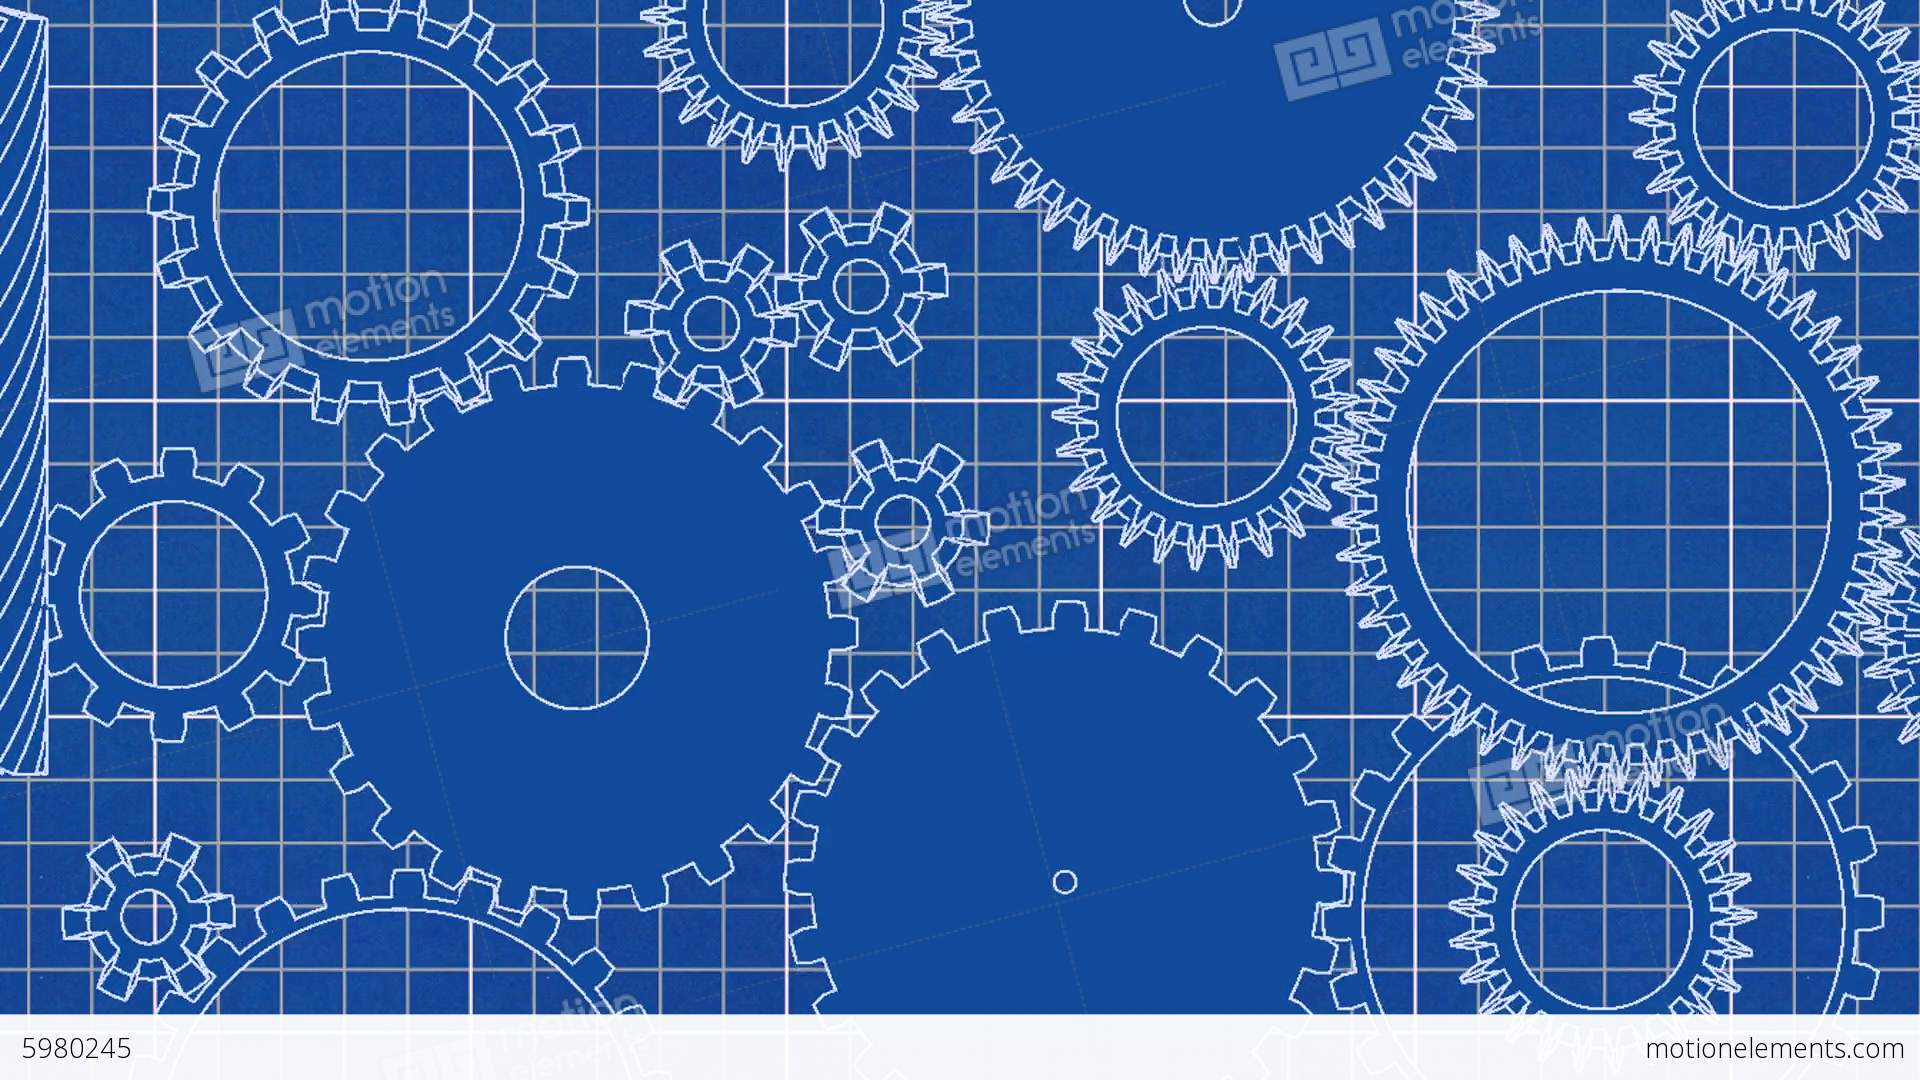 Gear cogs rotating system gearbox blueprint grid m stock animation gear cogs rotating system gearbox blueprint grid m stock video footage malvernweather Gallery